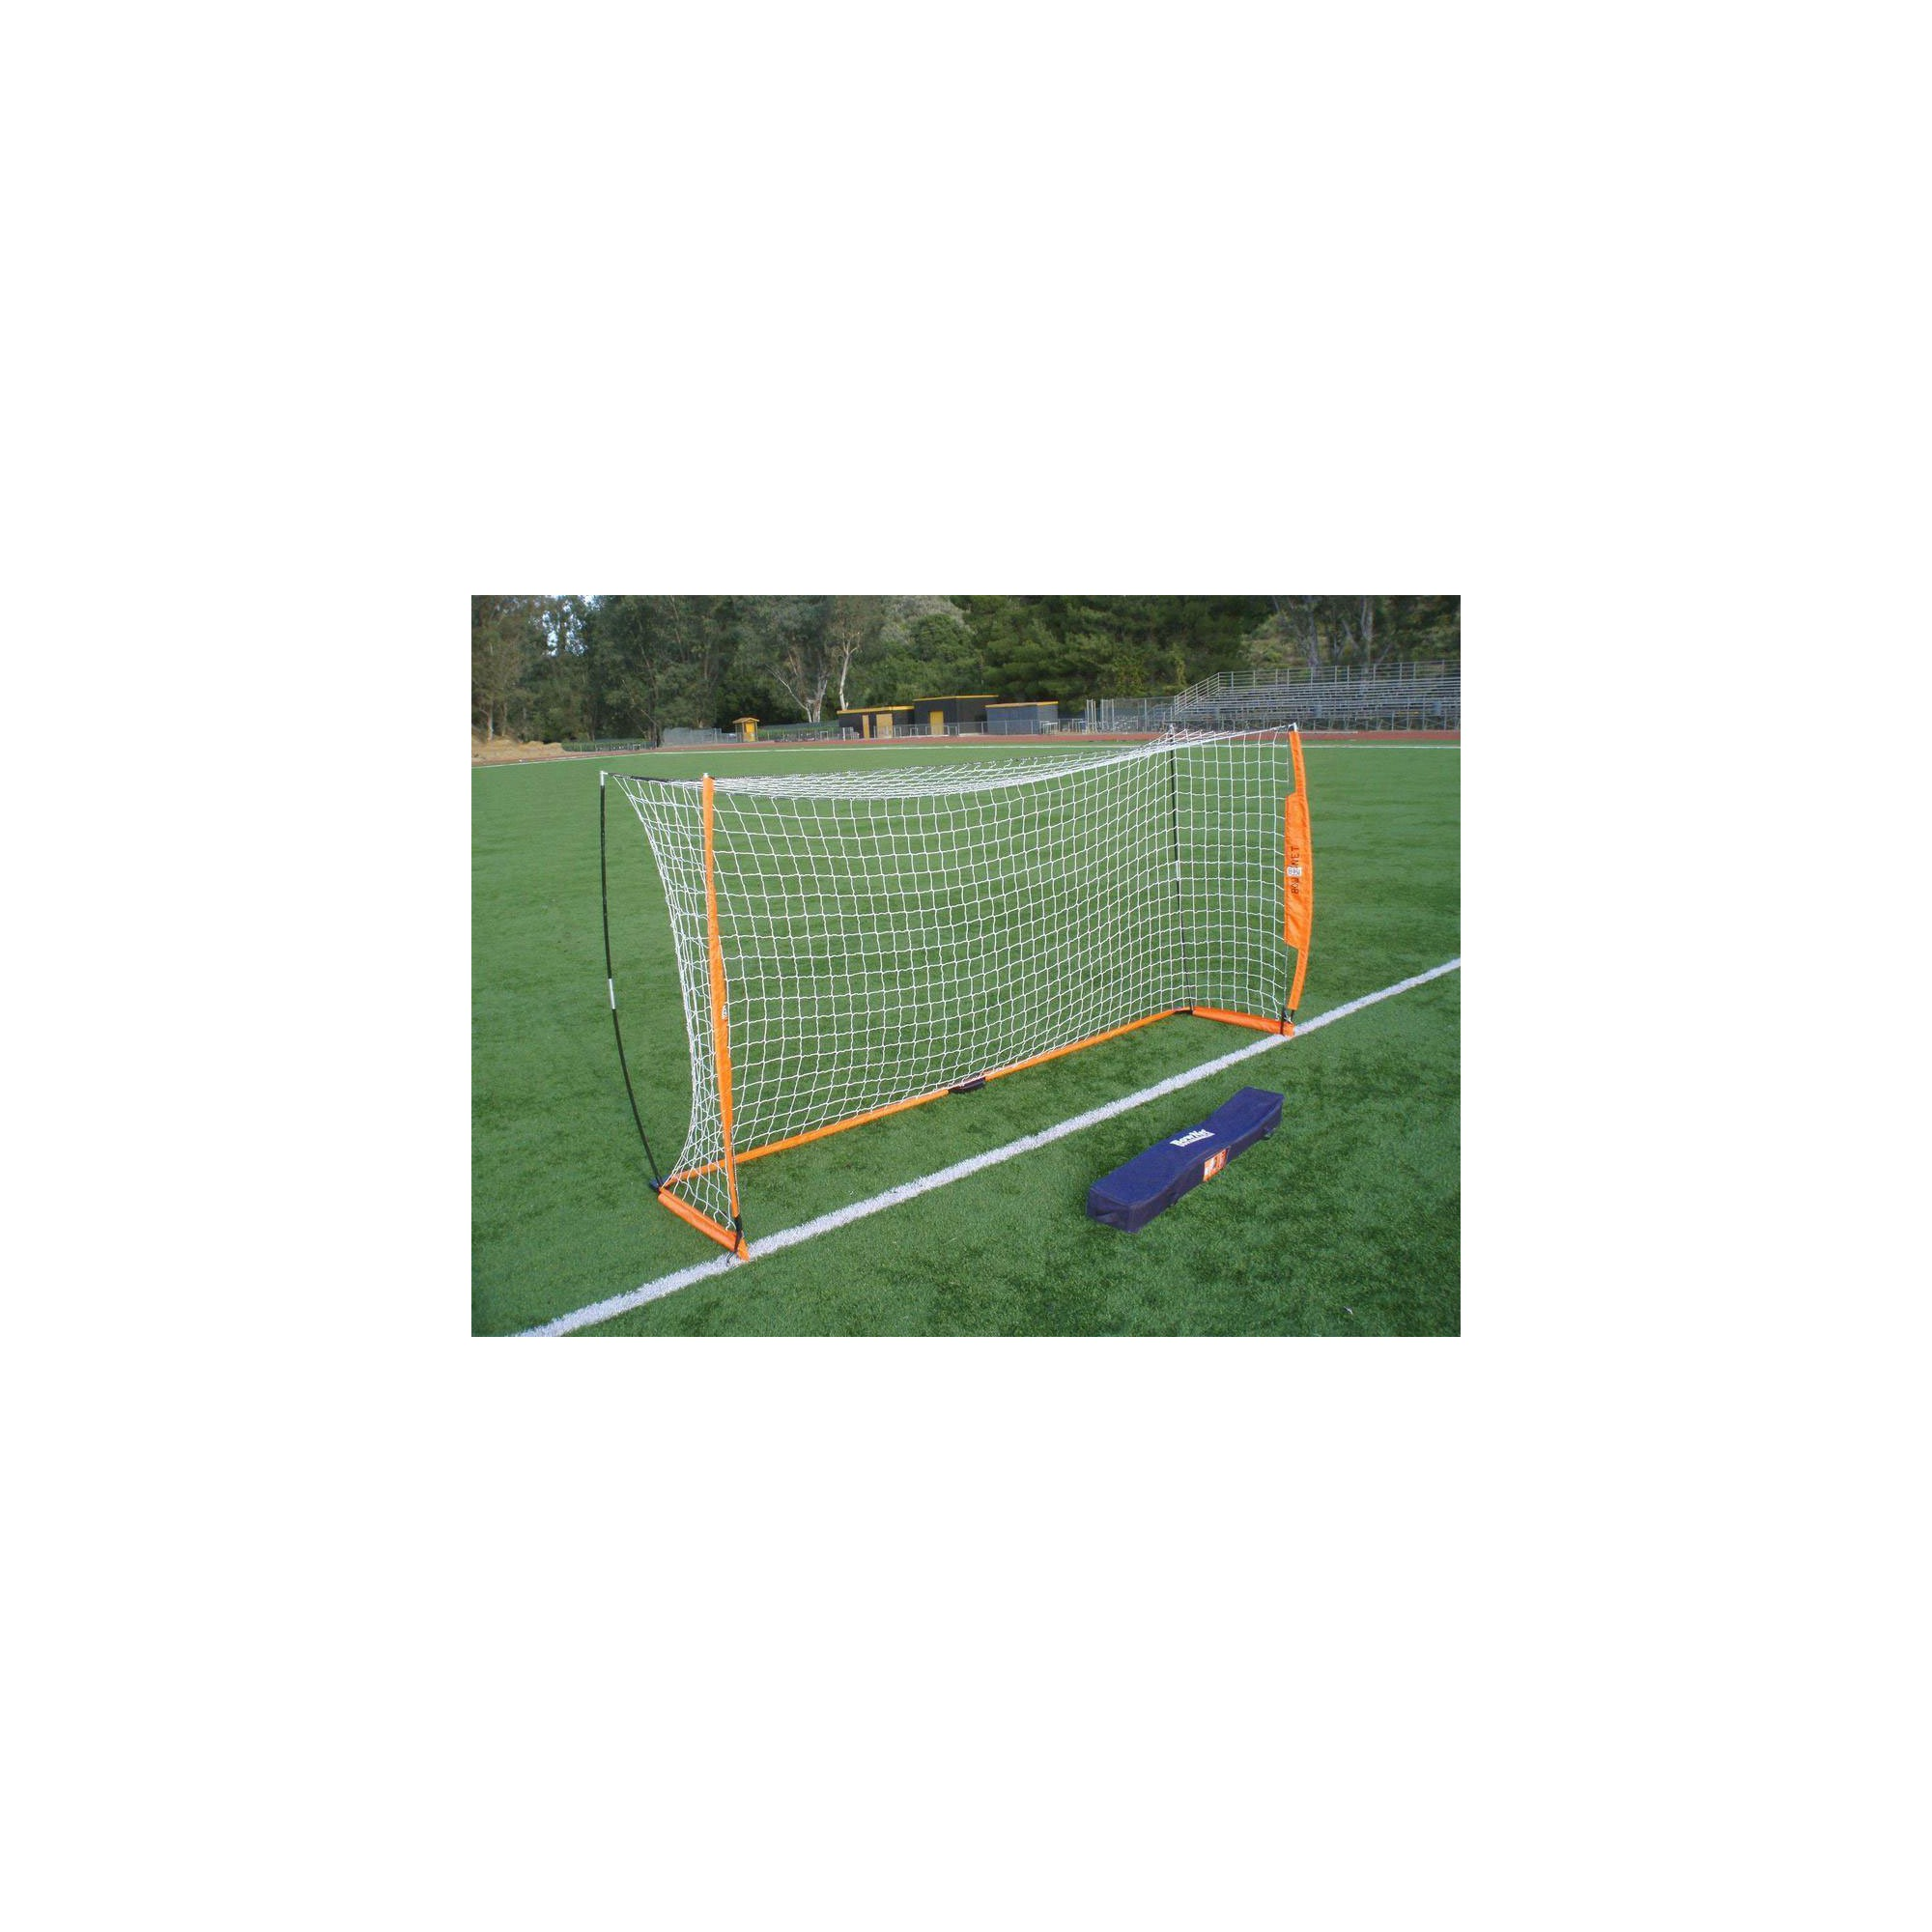 fae22775a Bownet 6 Foot X 12 Foot Portable Youth Training Practice Soccer Goal, Orange